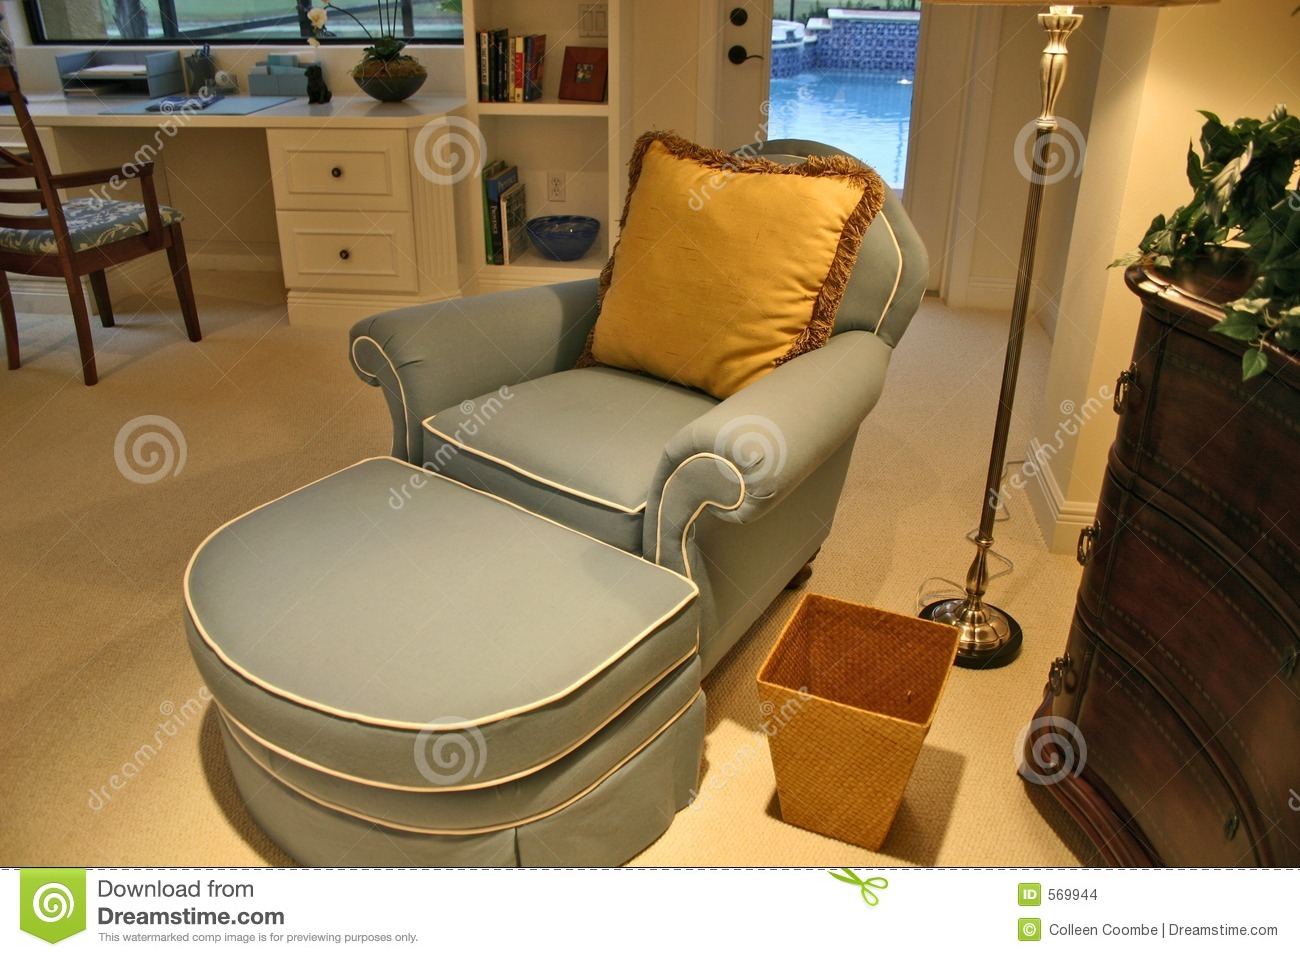 chaise in bedroom office stock images image 569944 plastic trash can garbage wastebasket bin household toilet